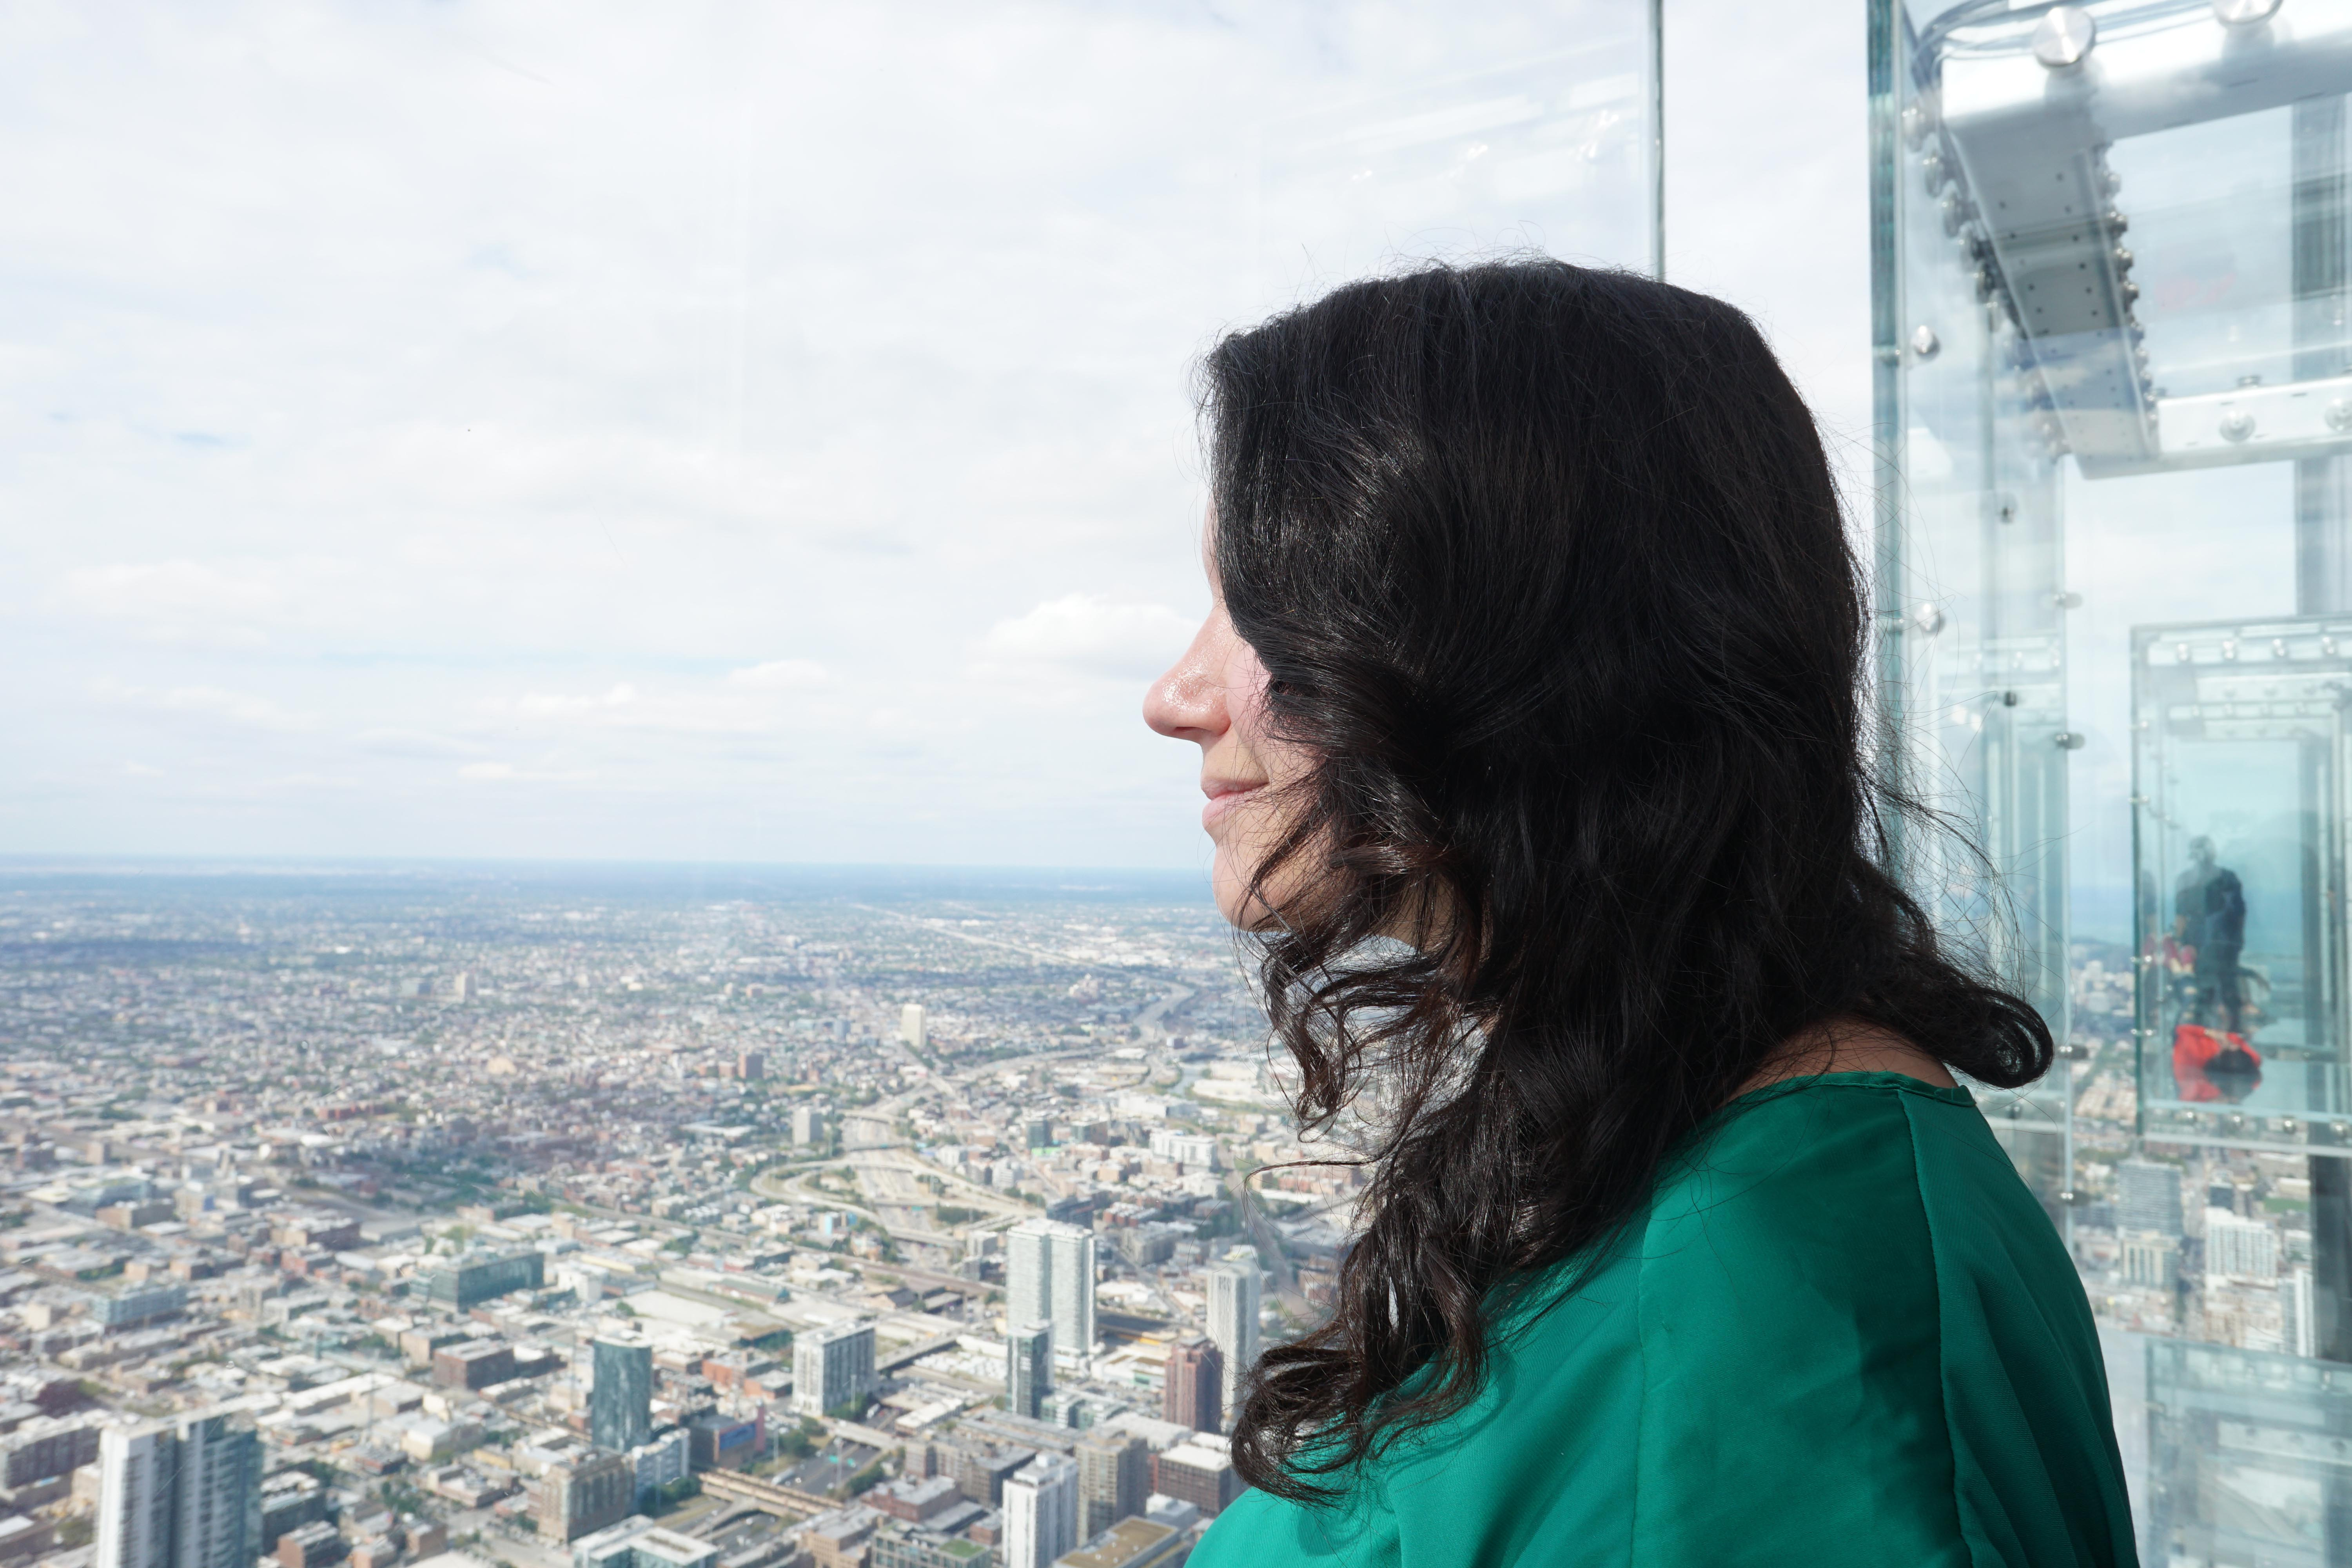 Woman looking out at Skydeck's The Ledge with the other three ledges sticking out of the building behind her